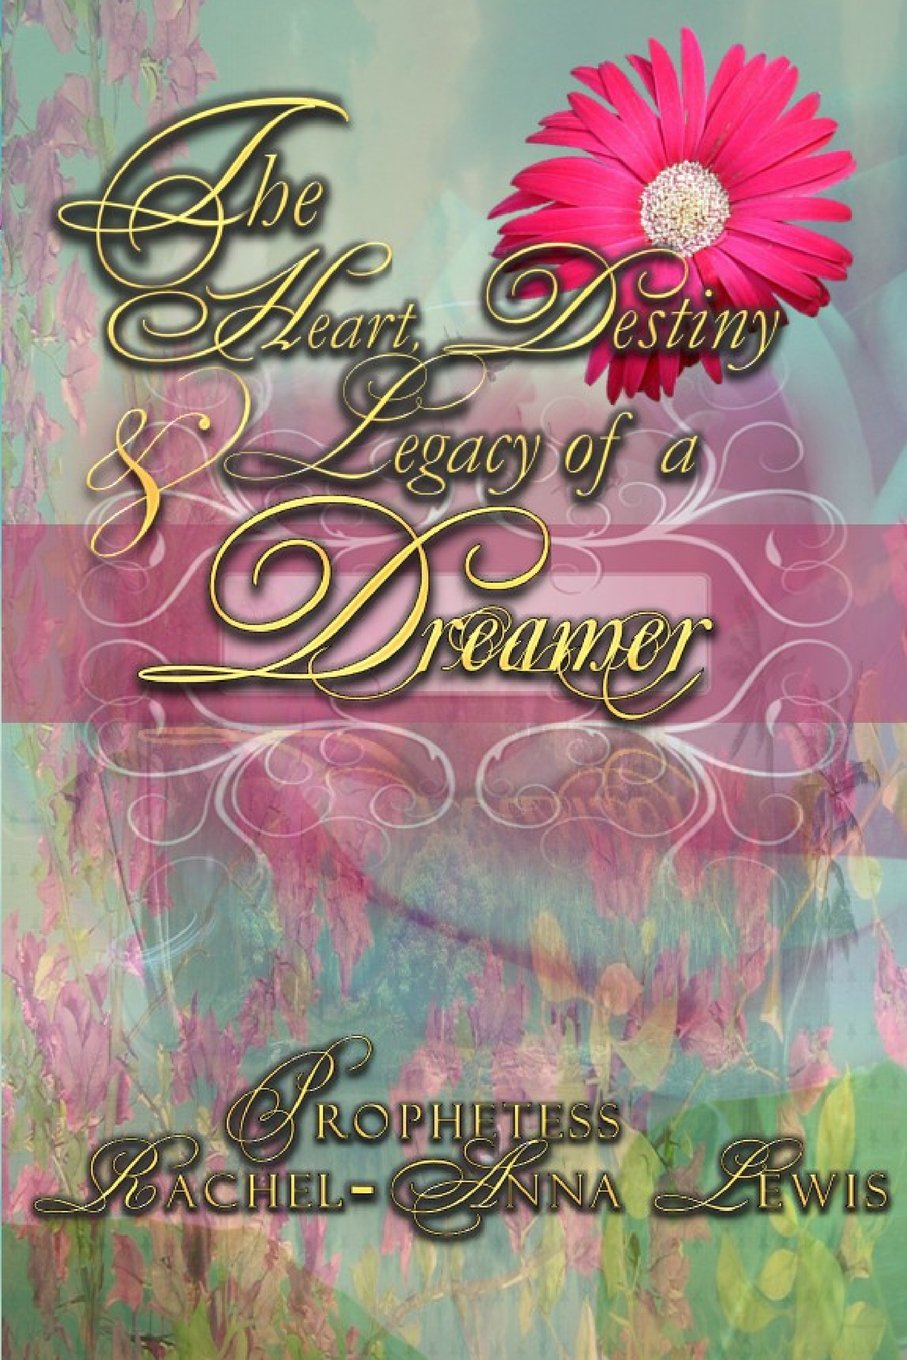 Download The Heart, Destiny & Legacy of a Dreamer pdf epub